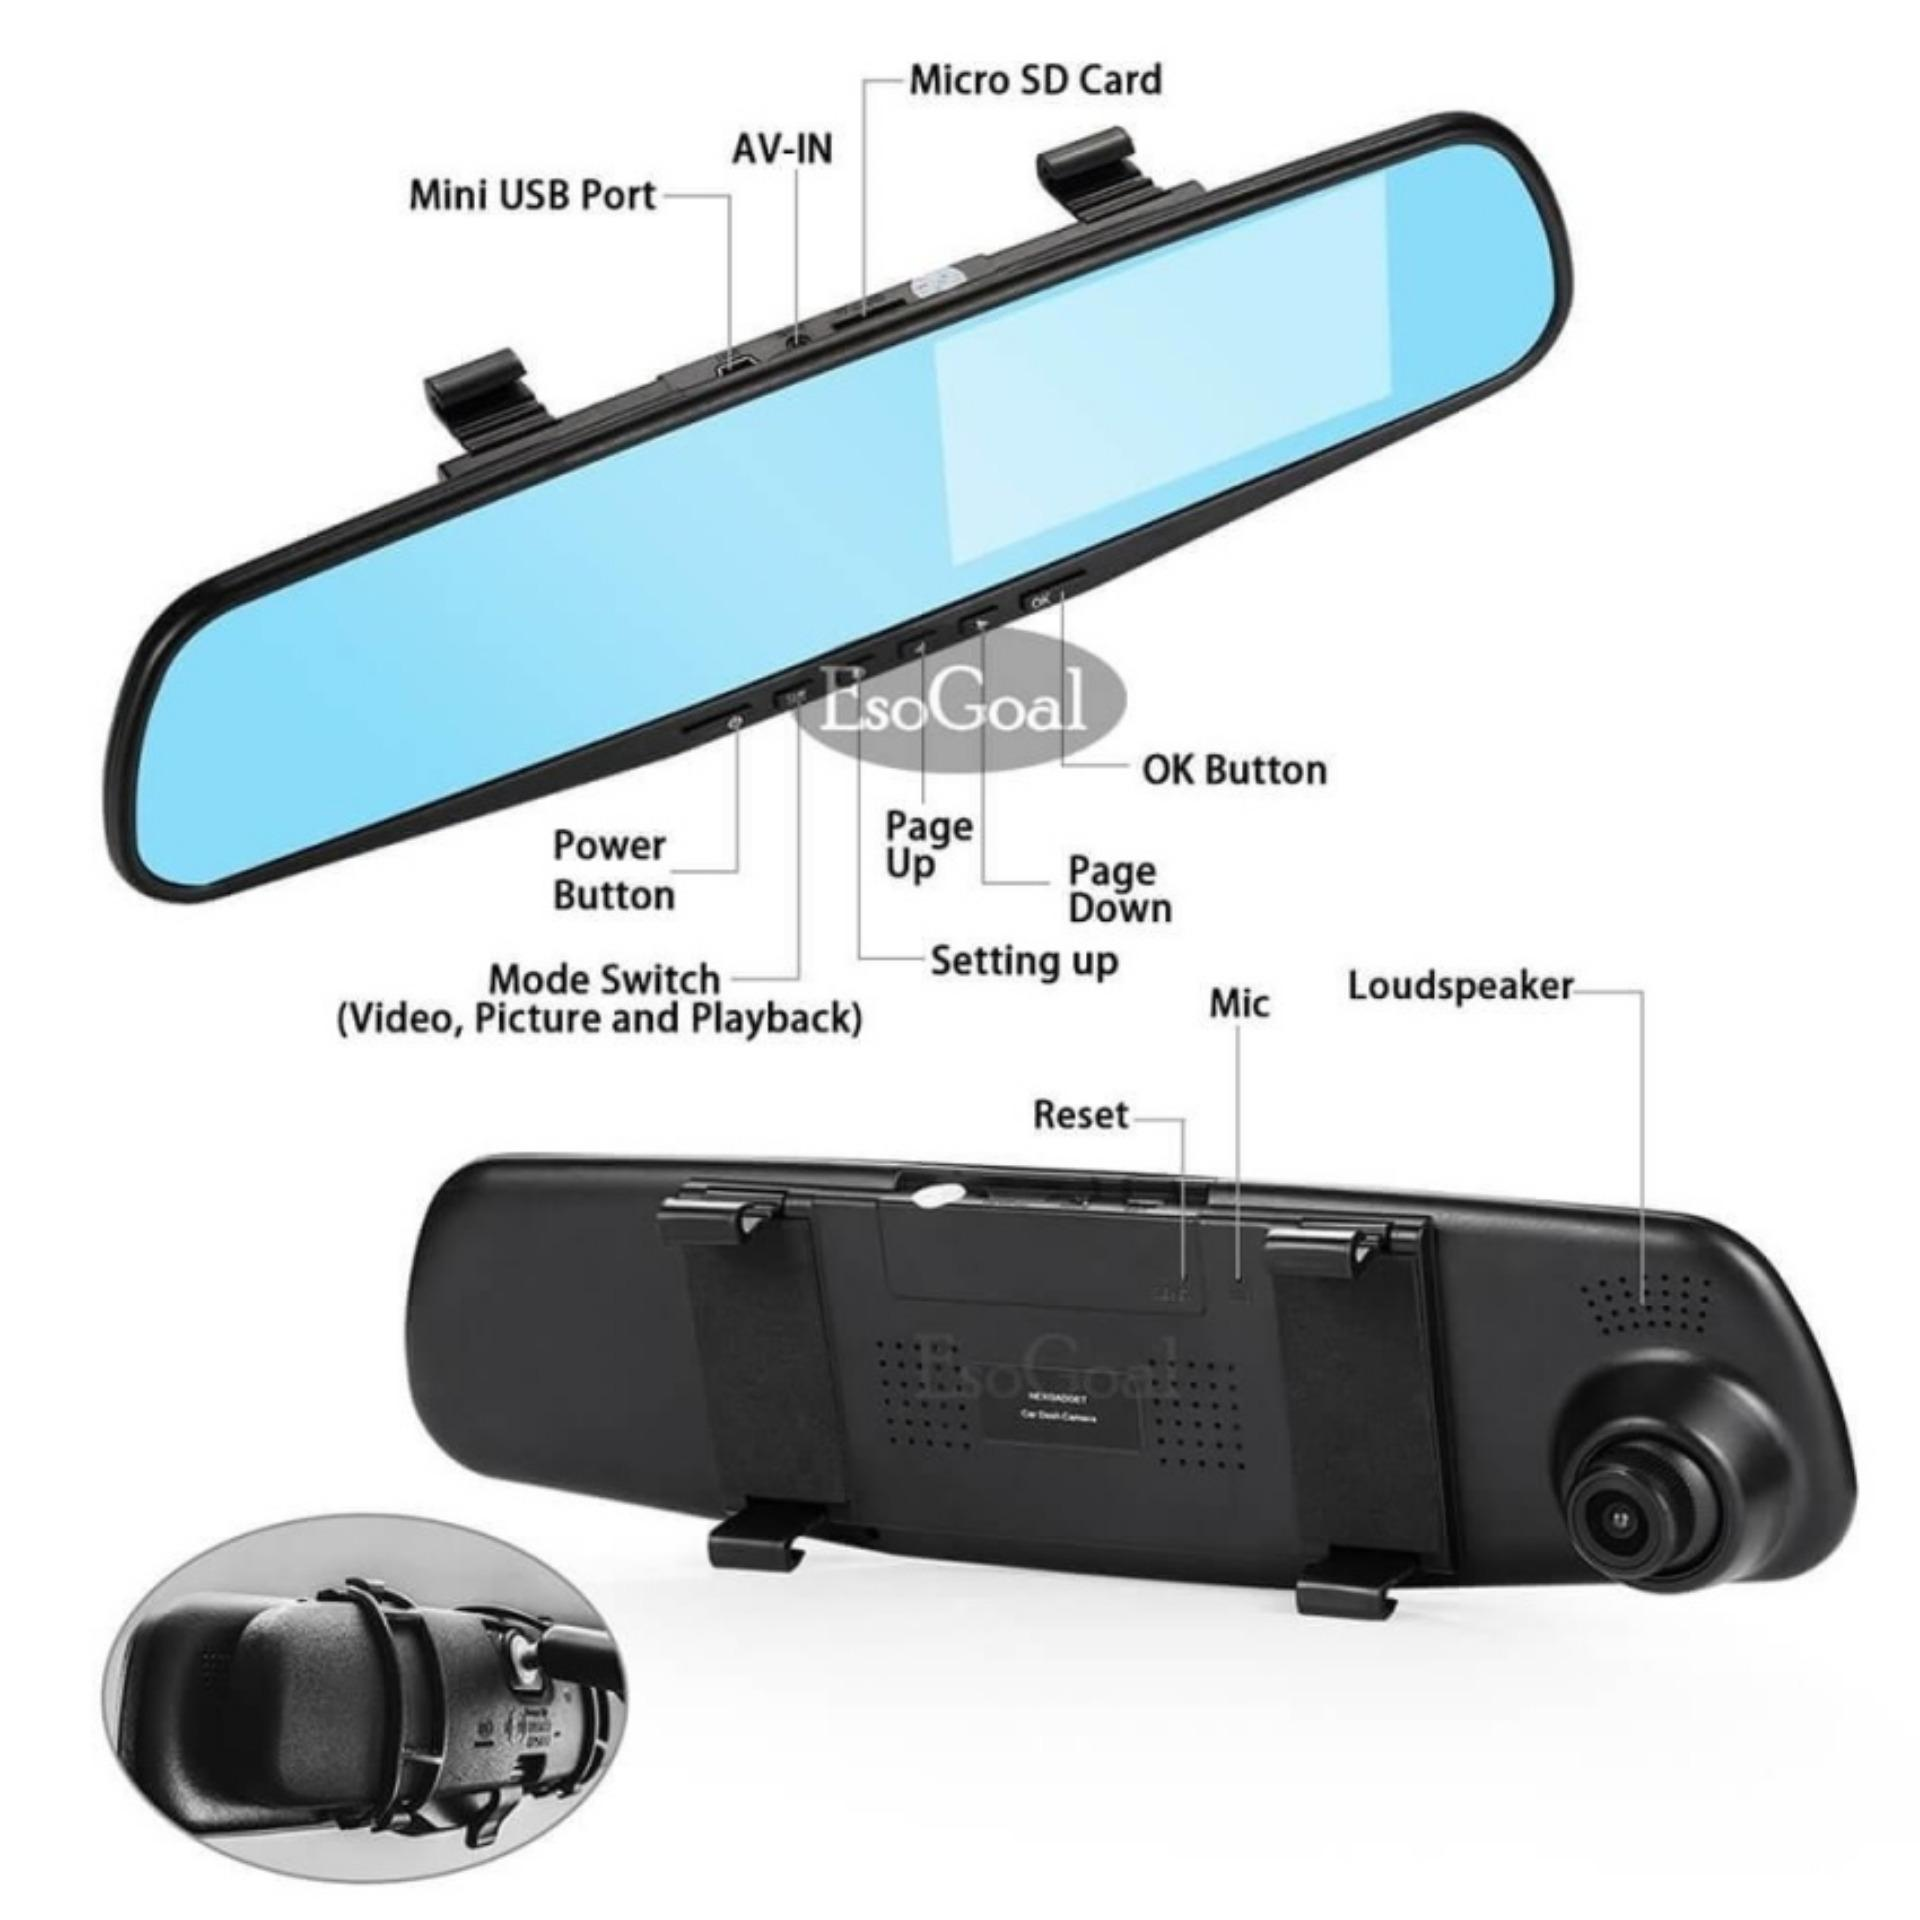 EsoGoal Dual lensa Dash Cam spion mobil kamera 4.3 Inch TFT LCD layar 1080 P mengemudi Video Recorder dengan kembali Up kamera, G - Sensor, Loop rekaman, Parking Mode, Motion Detection, Night Vision (TF card dikecualikan)